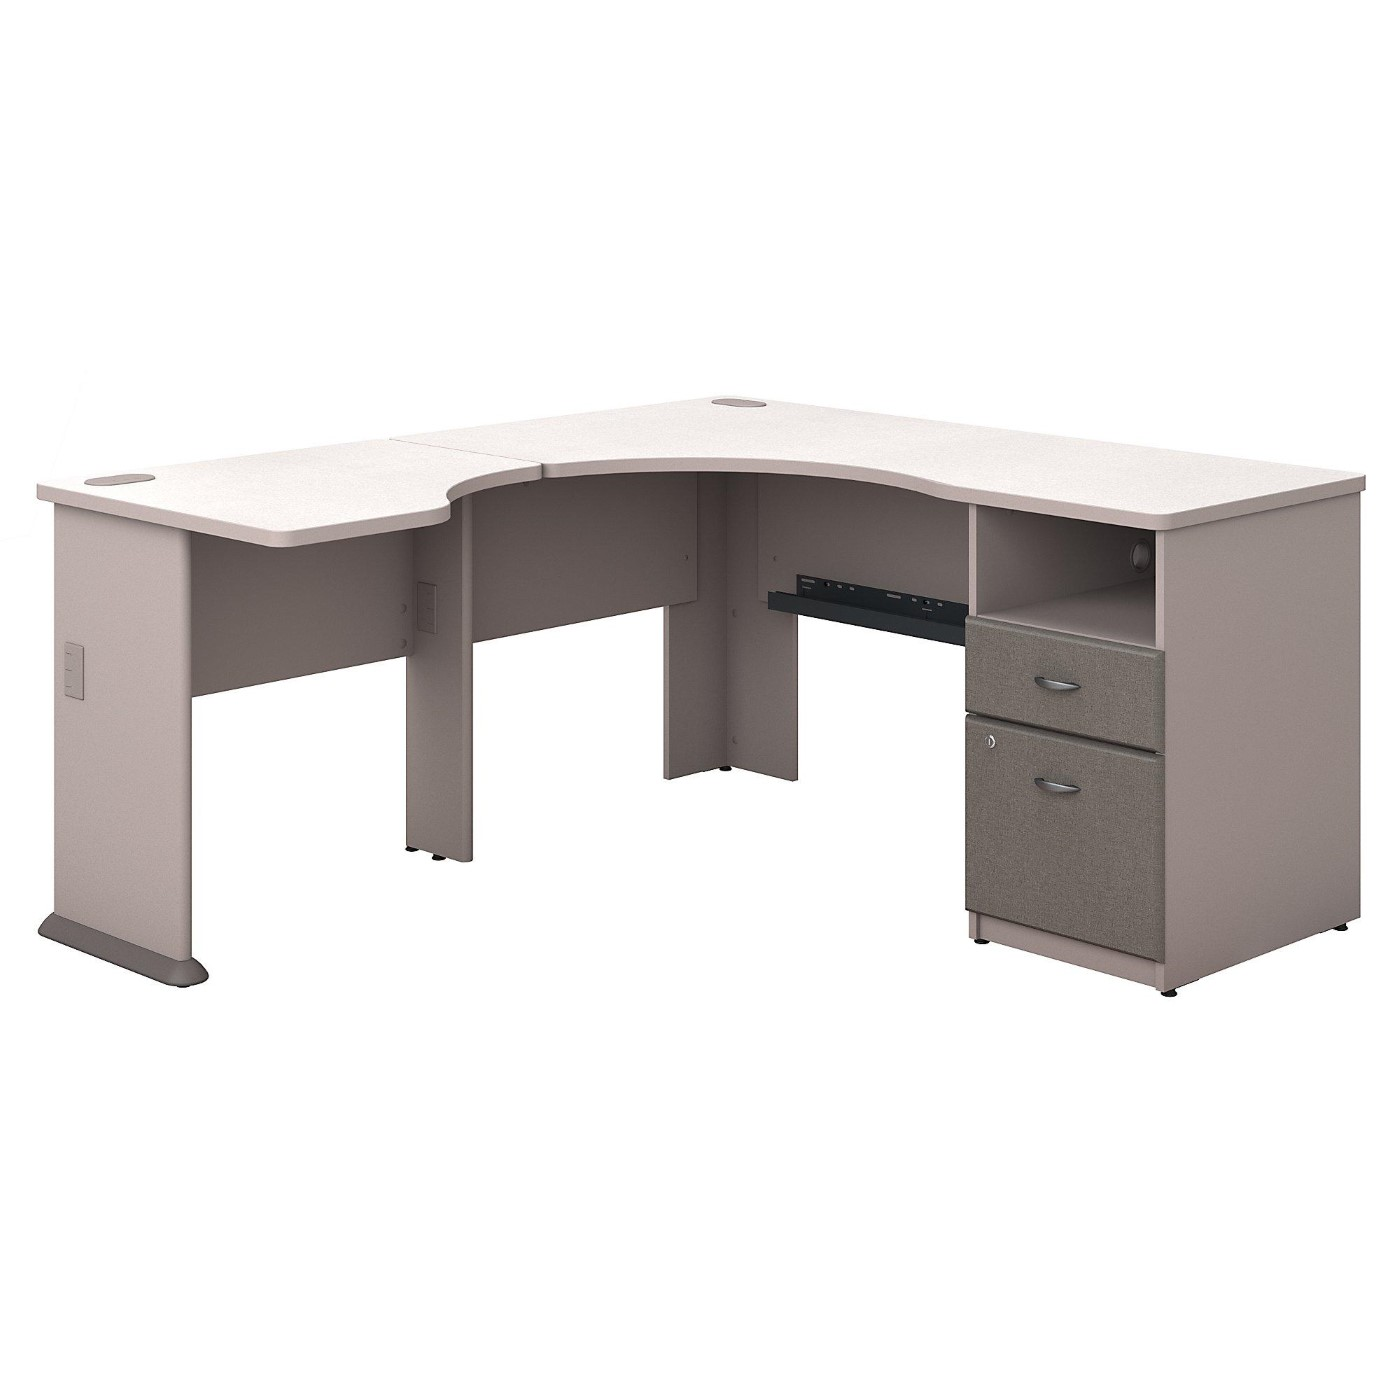 BUSH BUSINESS FURNITURE SERIES A 60W L SHAPED CORNER DESK WITH 2 DRAWER PEDESTAL AND 30W BRIDGE. FREE SHIPPING</font></b></font></b>&#x1F384<font color=red><b>ERGONOMICHOME HOLIDAY SALE - ENDS DEC. 17, 2019</b></font>&#x1F384